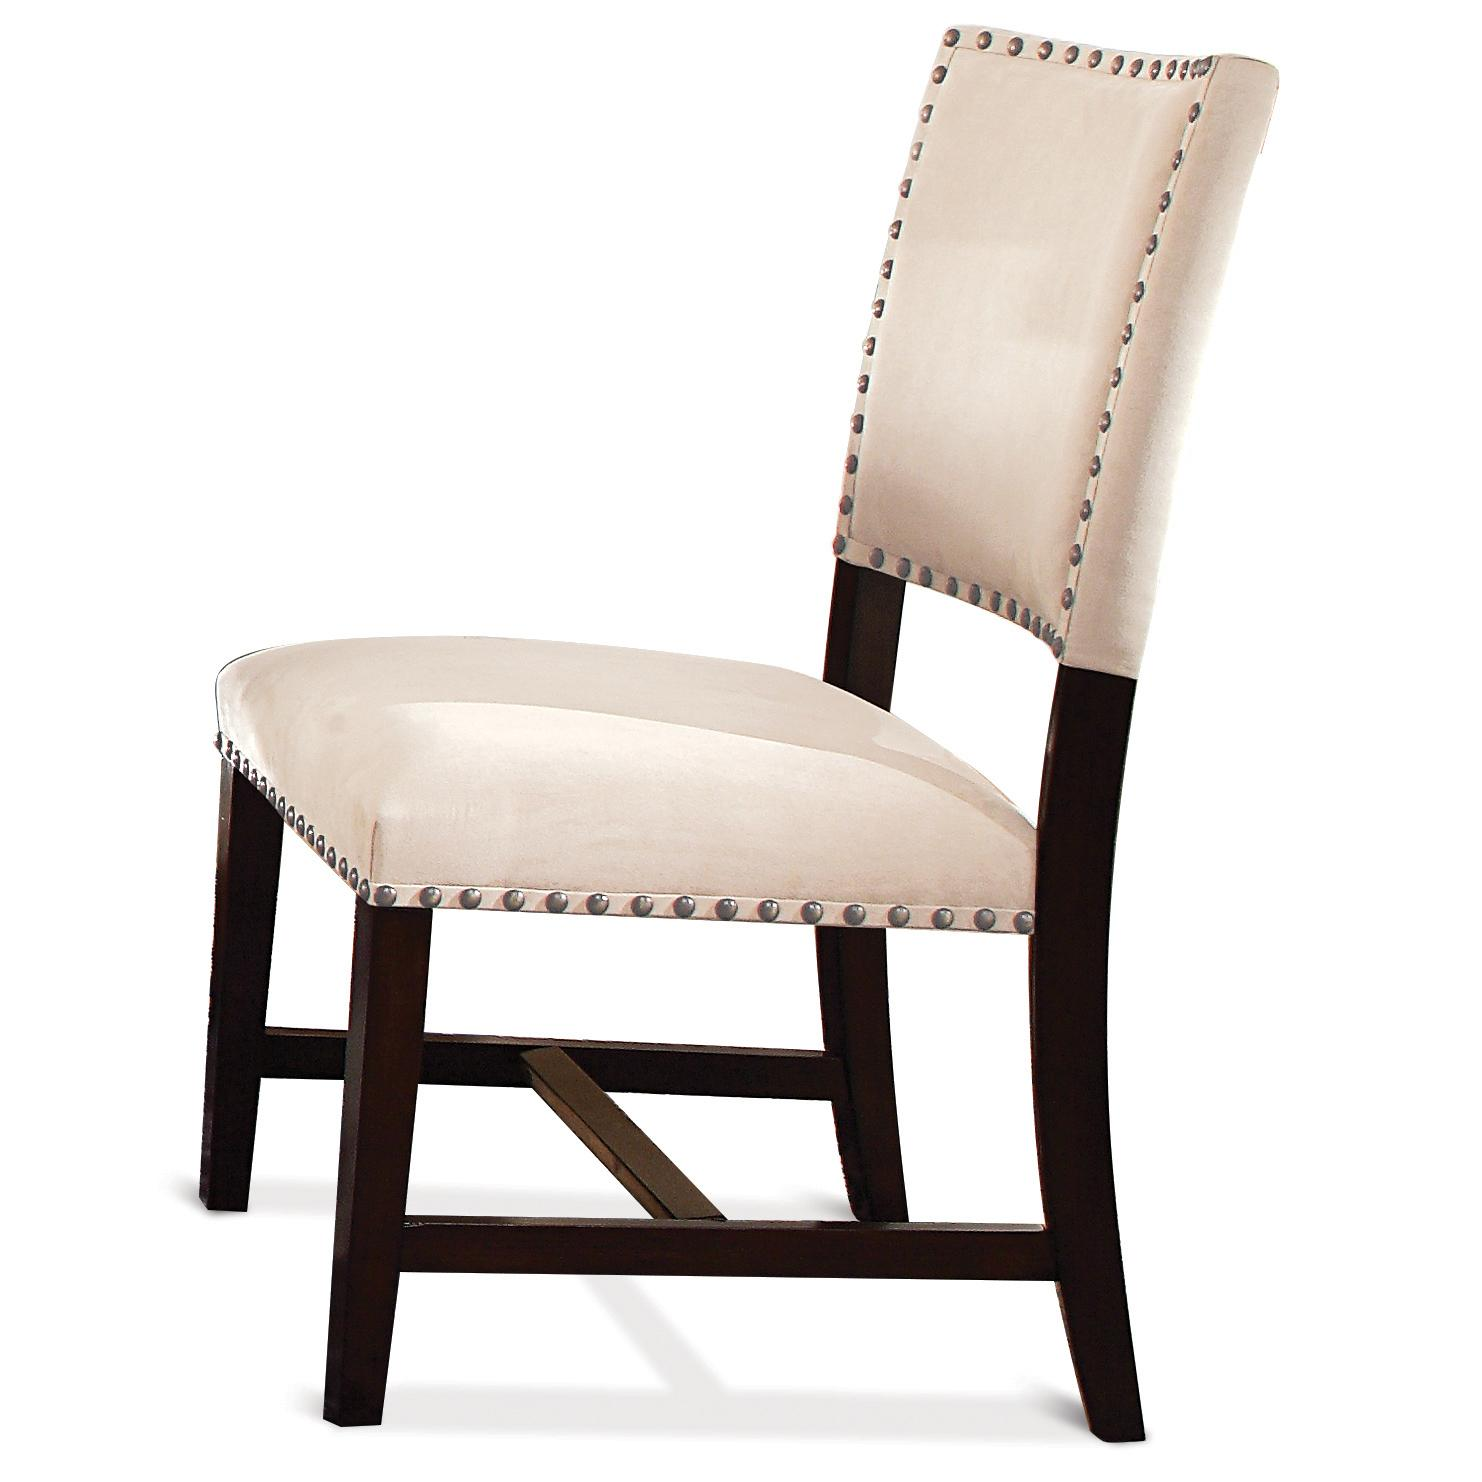 microfiber upholstered parson chair with nailhead trim